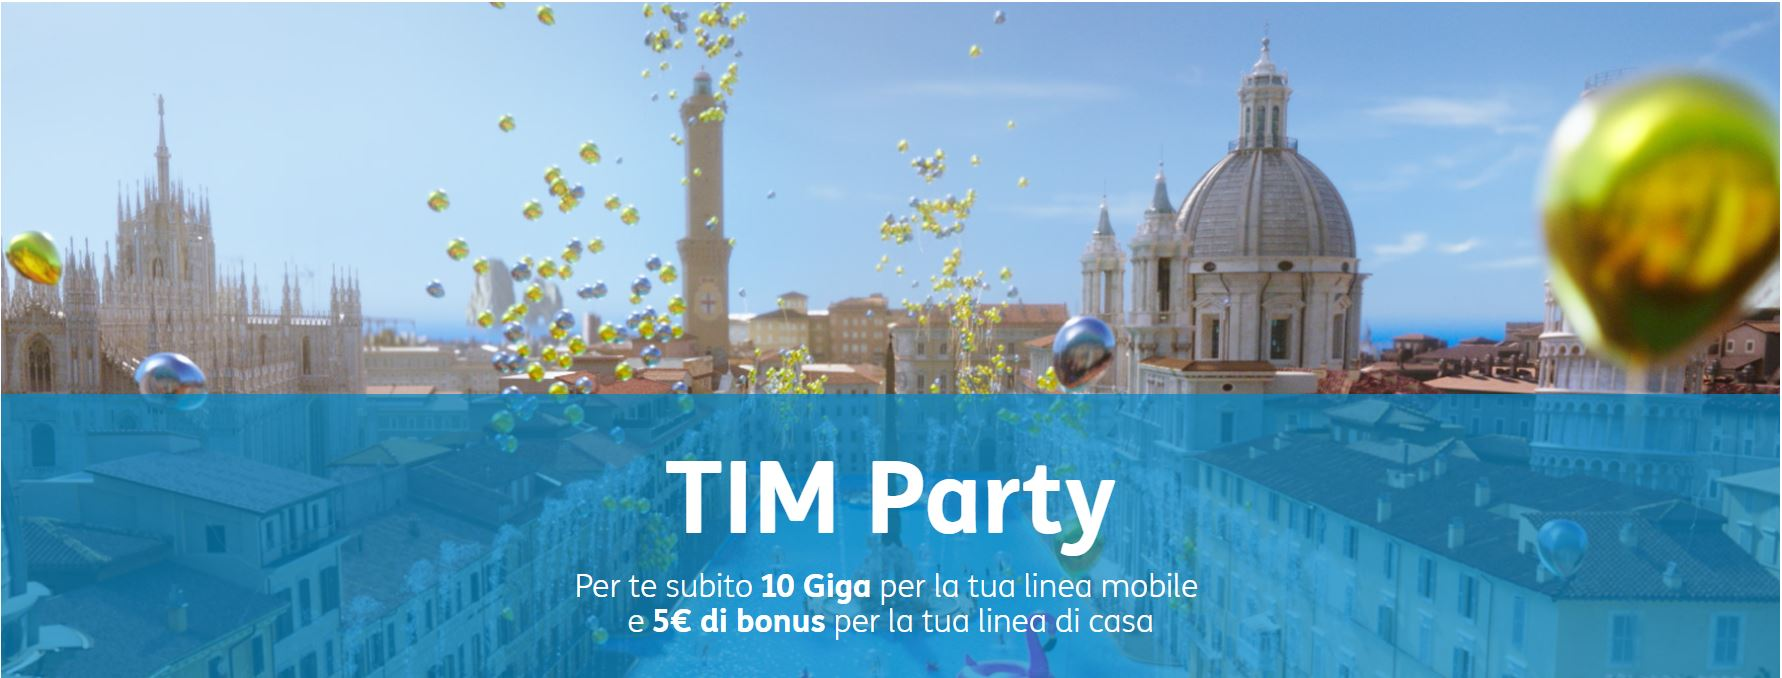 tim-party